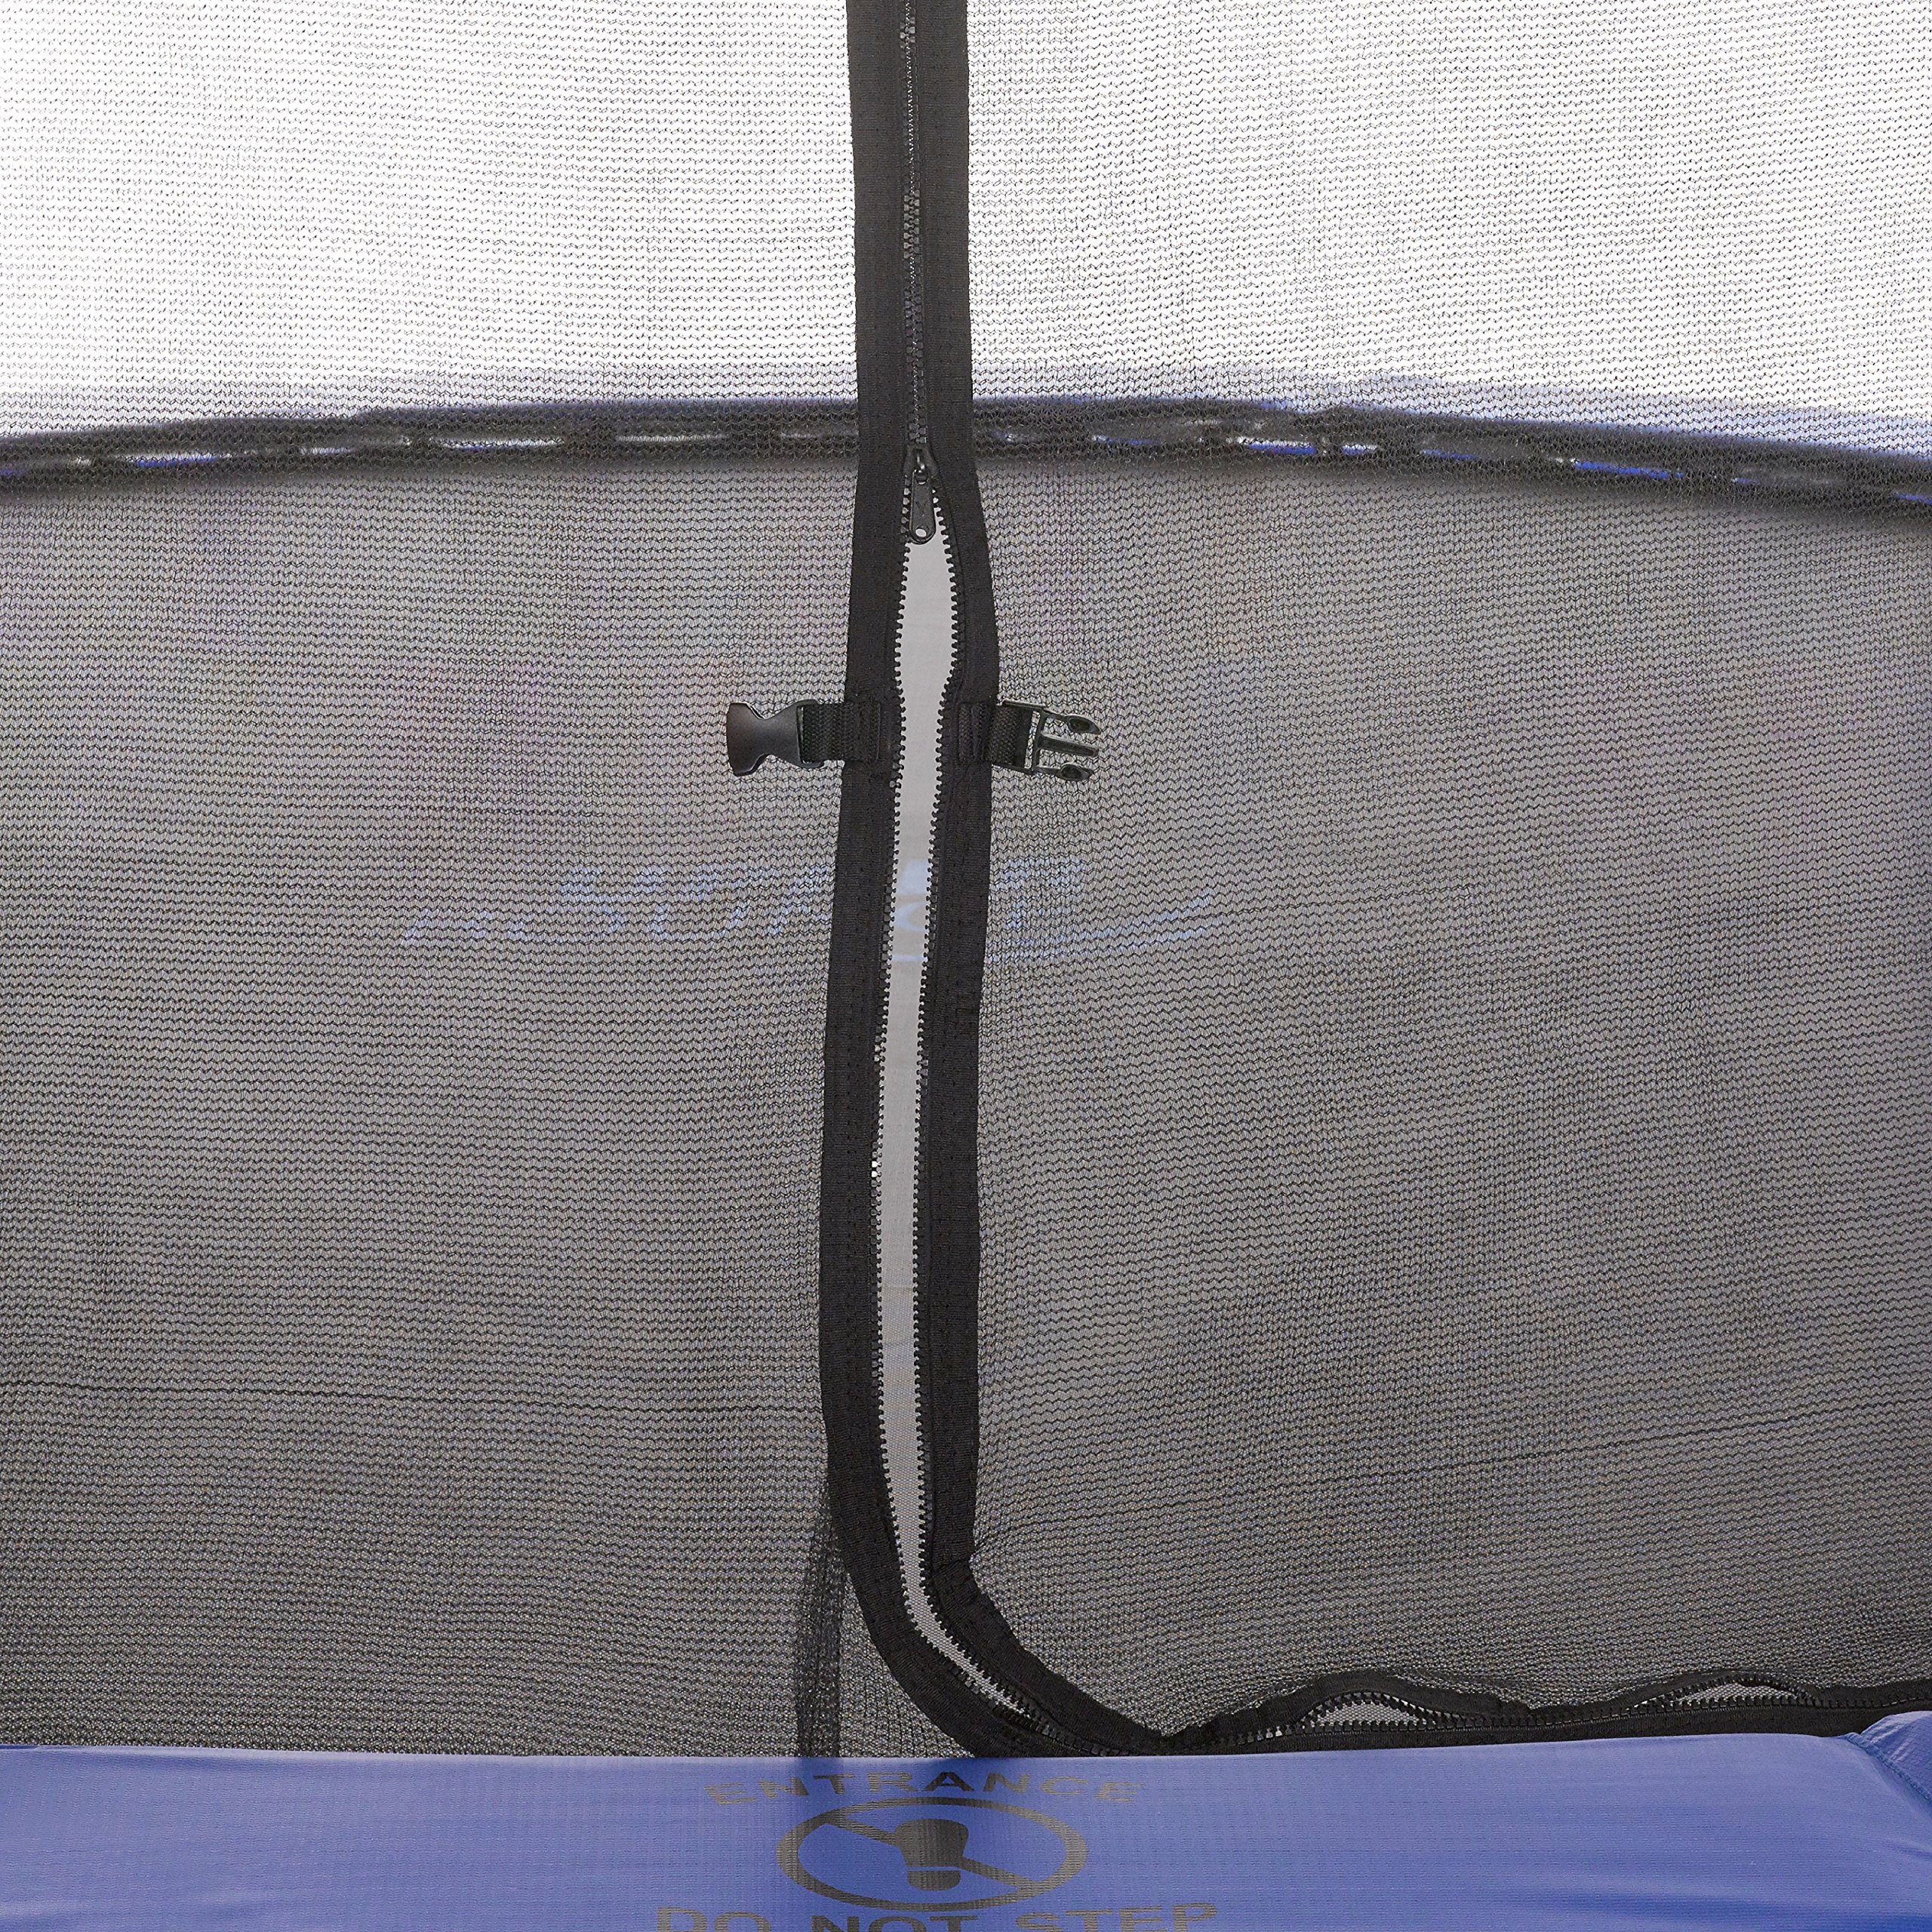 Upper Bounce 7.5 FT. Trampoline & Enclosure Set equipped with the New ''EASY ASSEMBLE FEATURE'' by Upper Bounce (Image #4)